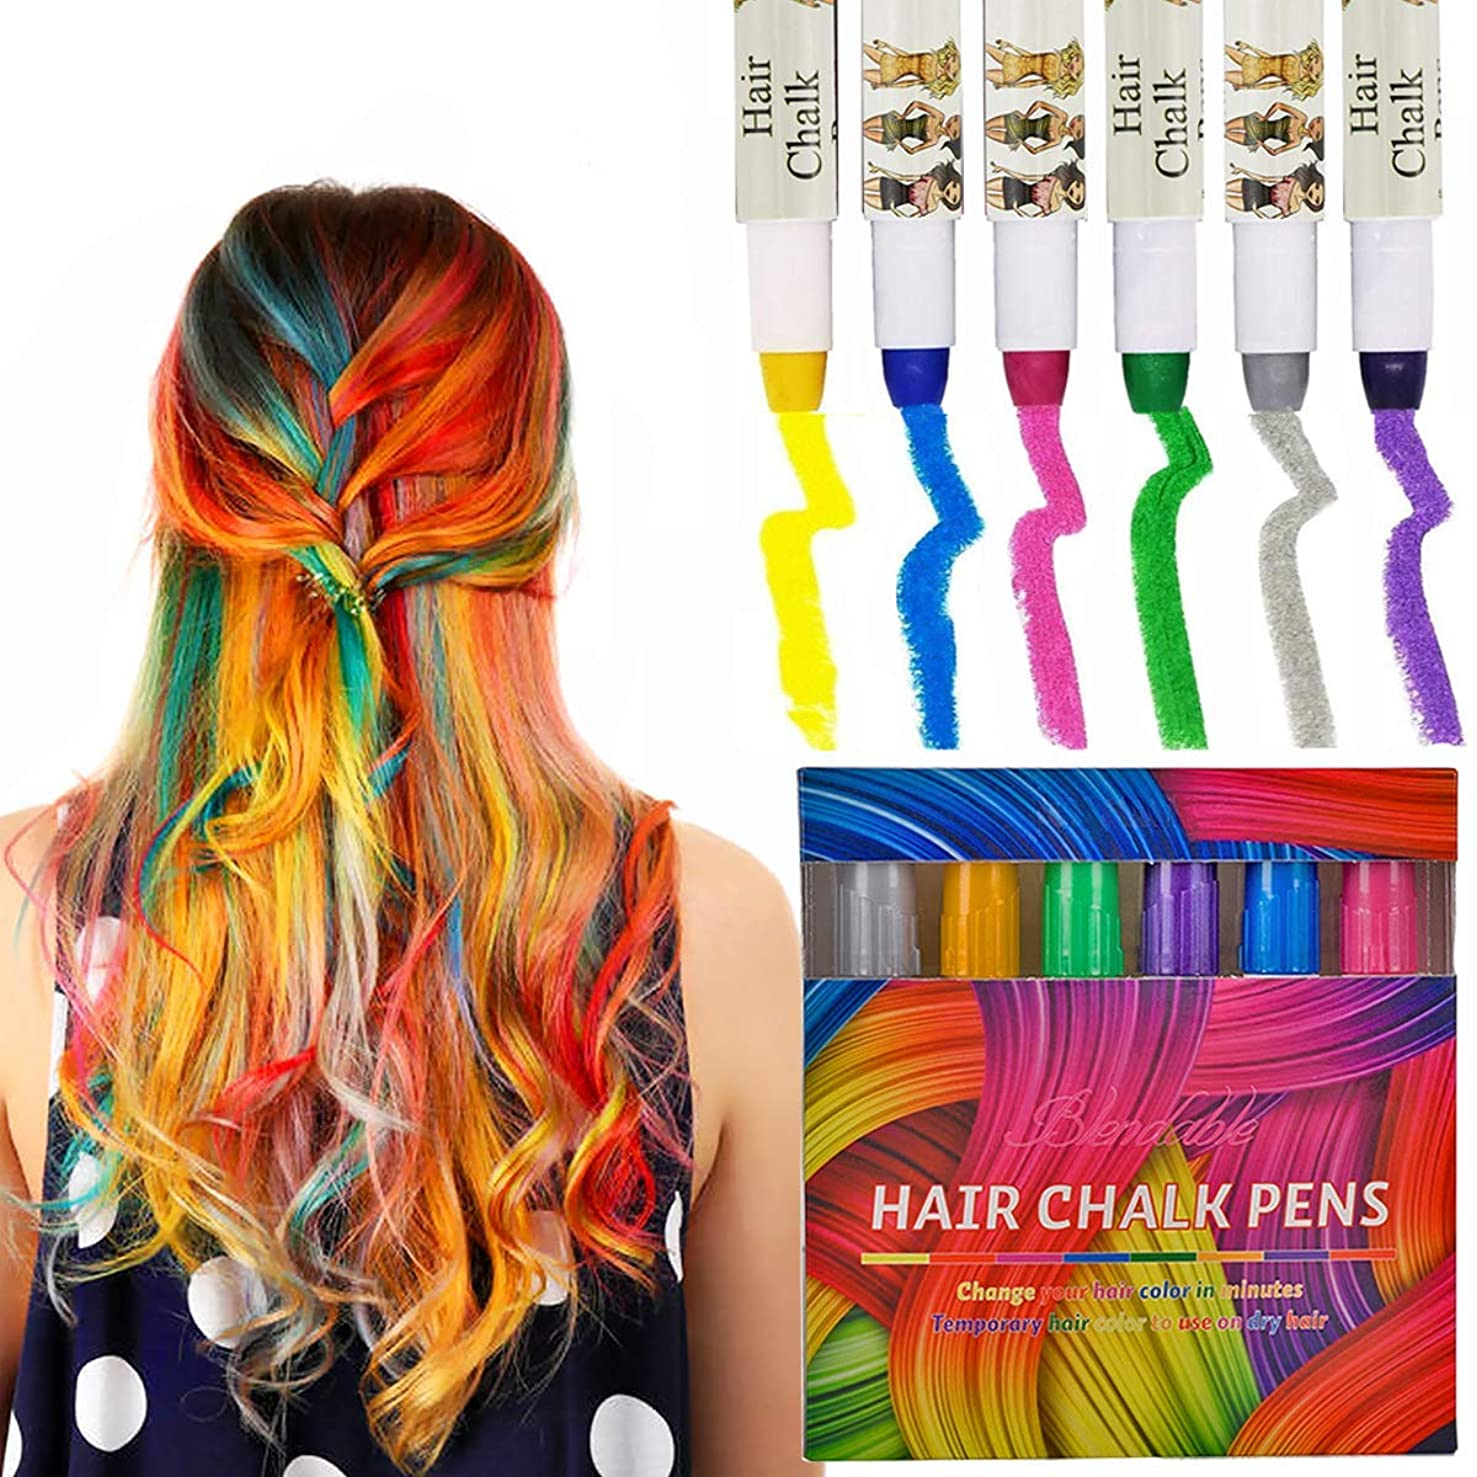 Kyerivs Hair Chalk Hair Pens 6 Color Metallic Glitter Temporary Hair Color, No Mess, Built in Sealant, Birthday Party Dress up Christmas Gift for Girls Works on All Hair Colors